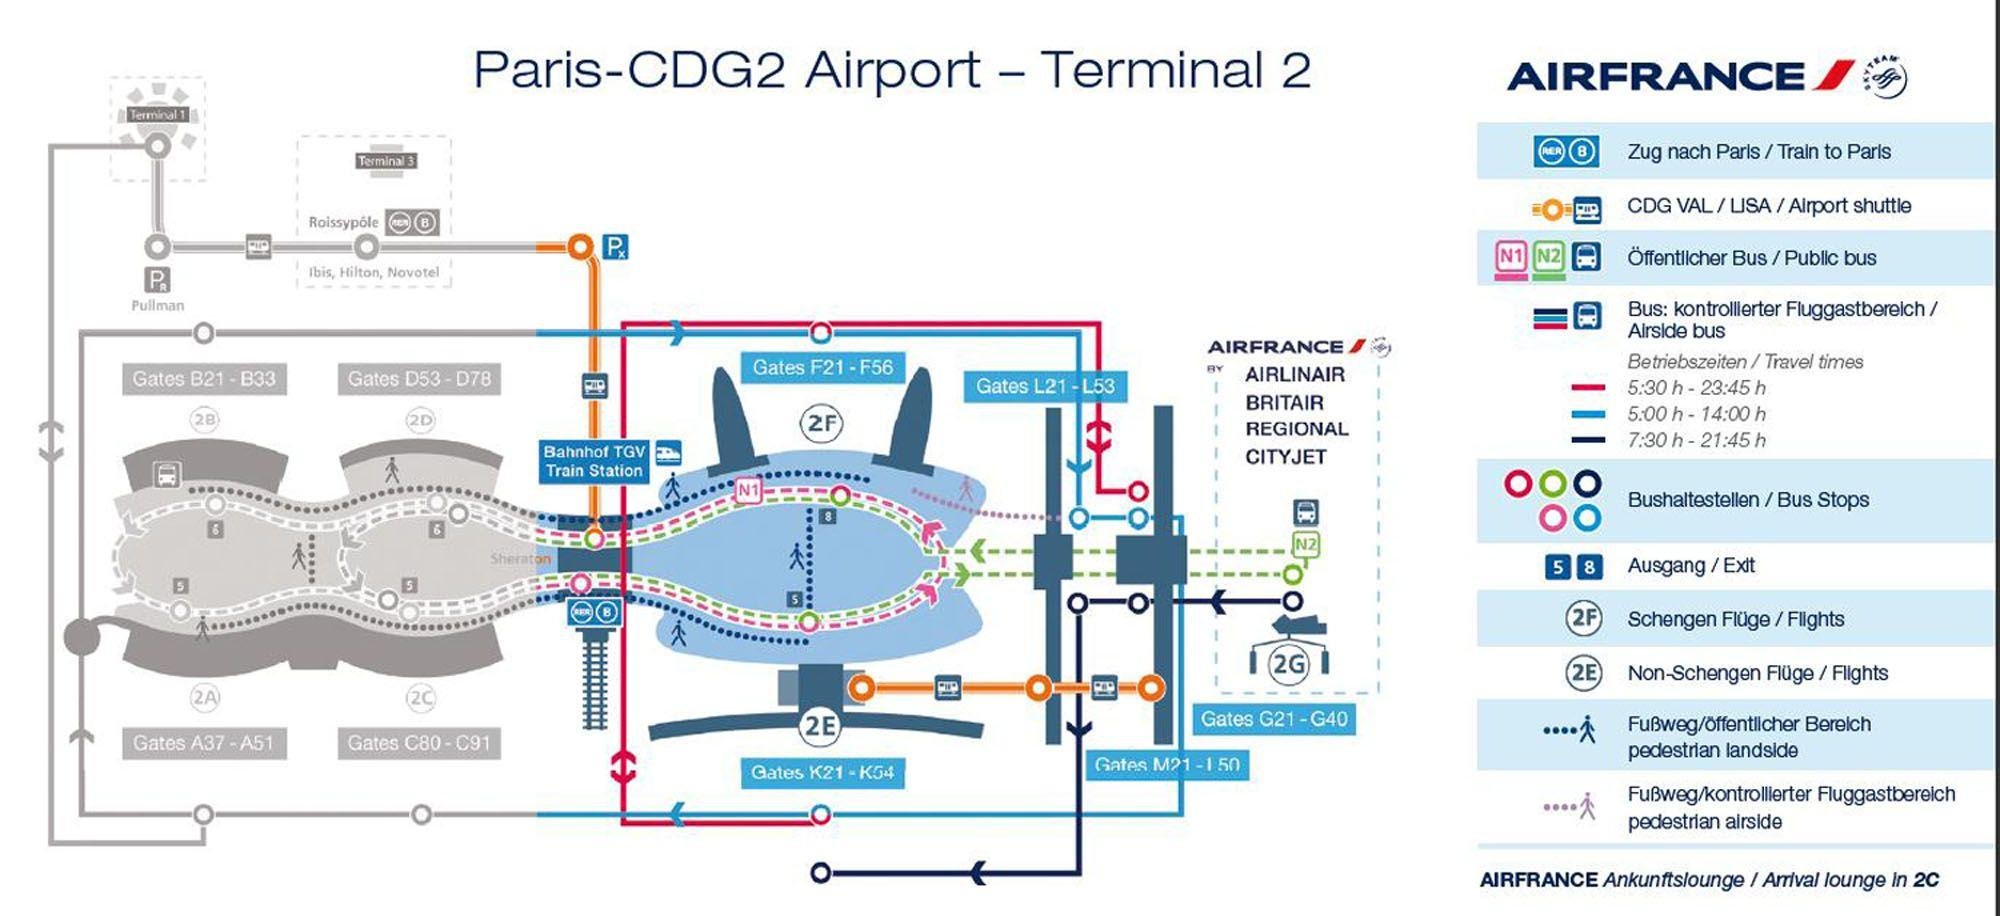 map of charles de gaulle terminal 2 Charles De Gaulle Airport Map Terminal 2 Terminal 2 Map Cdg Ile map of charles de gaulle terminal 2